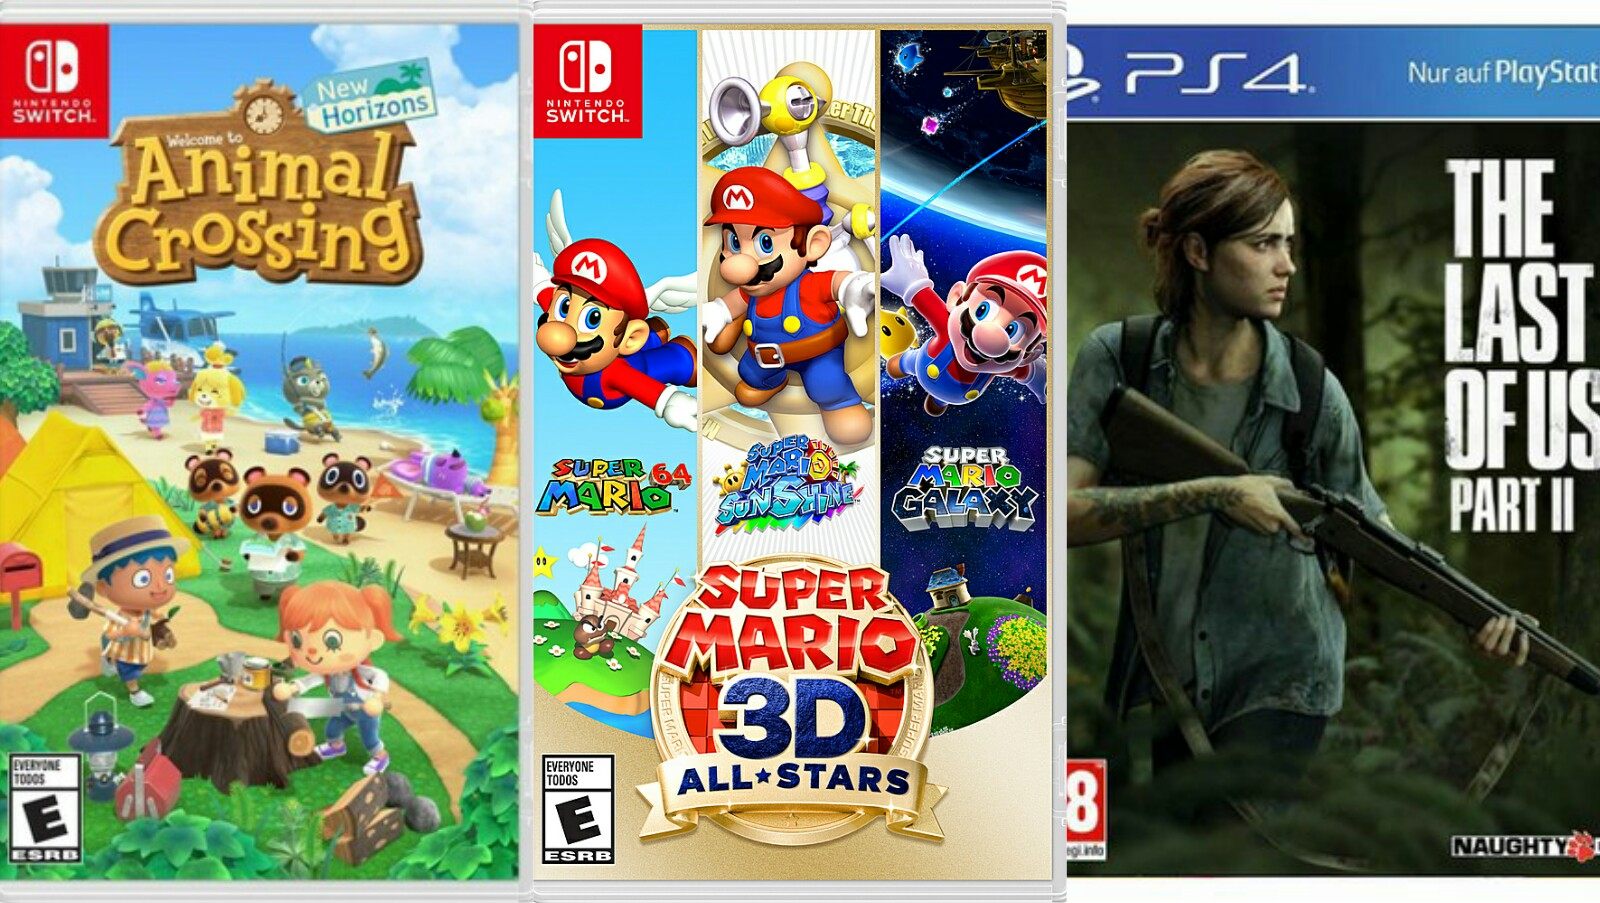 Nintendo Dominates Amazon's 2020 Best-Seller List, Topping Cyberpunk 2077, TLOU2 & ACV